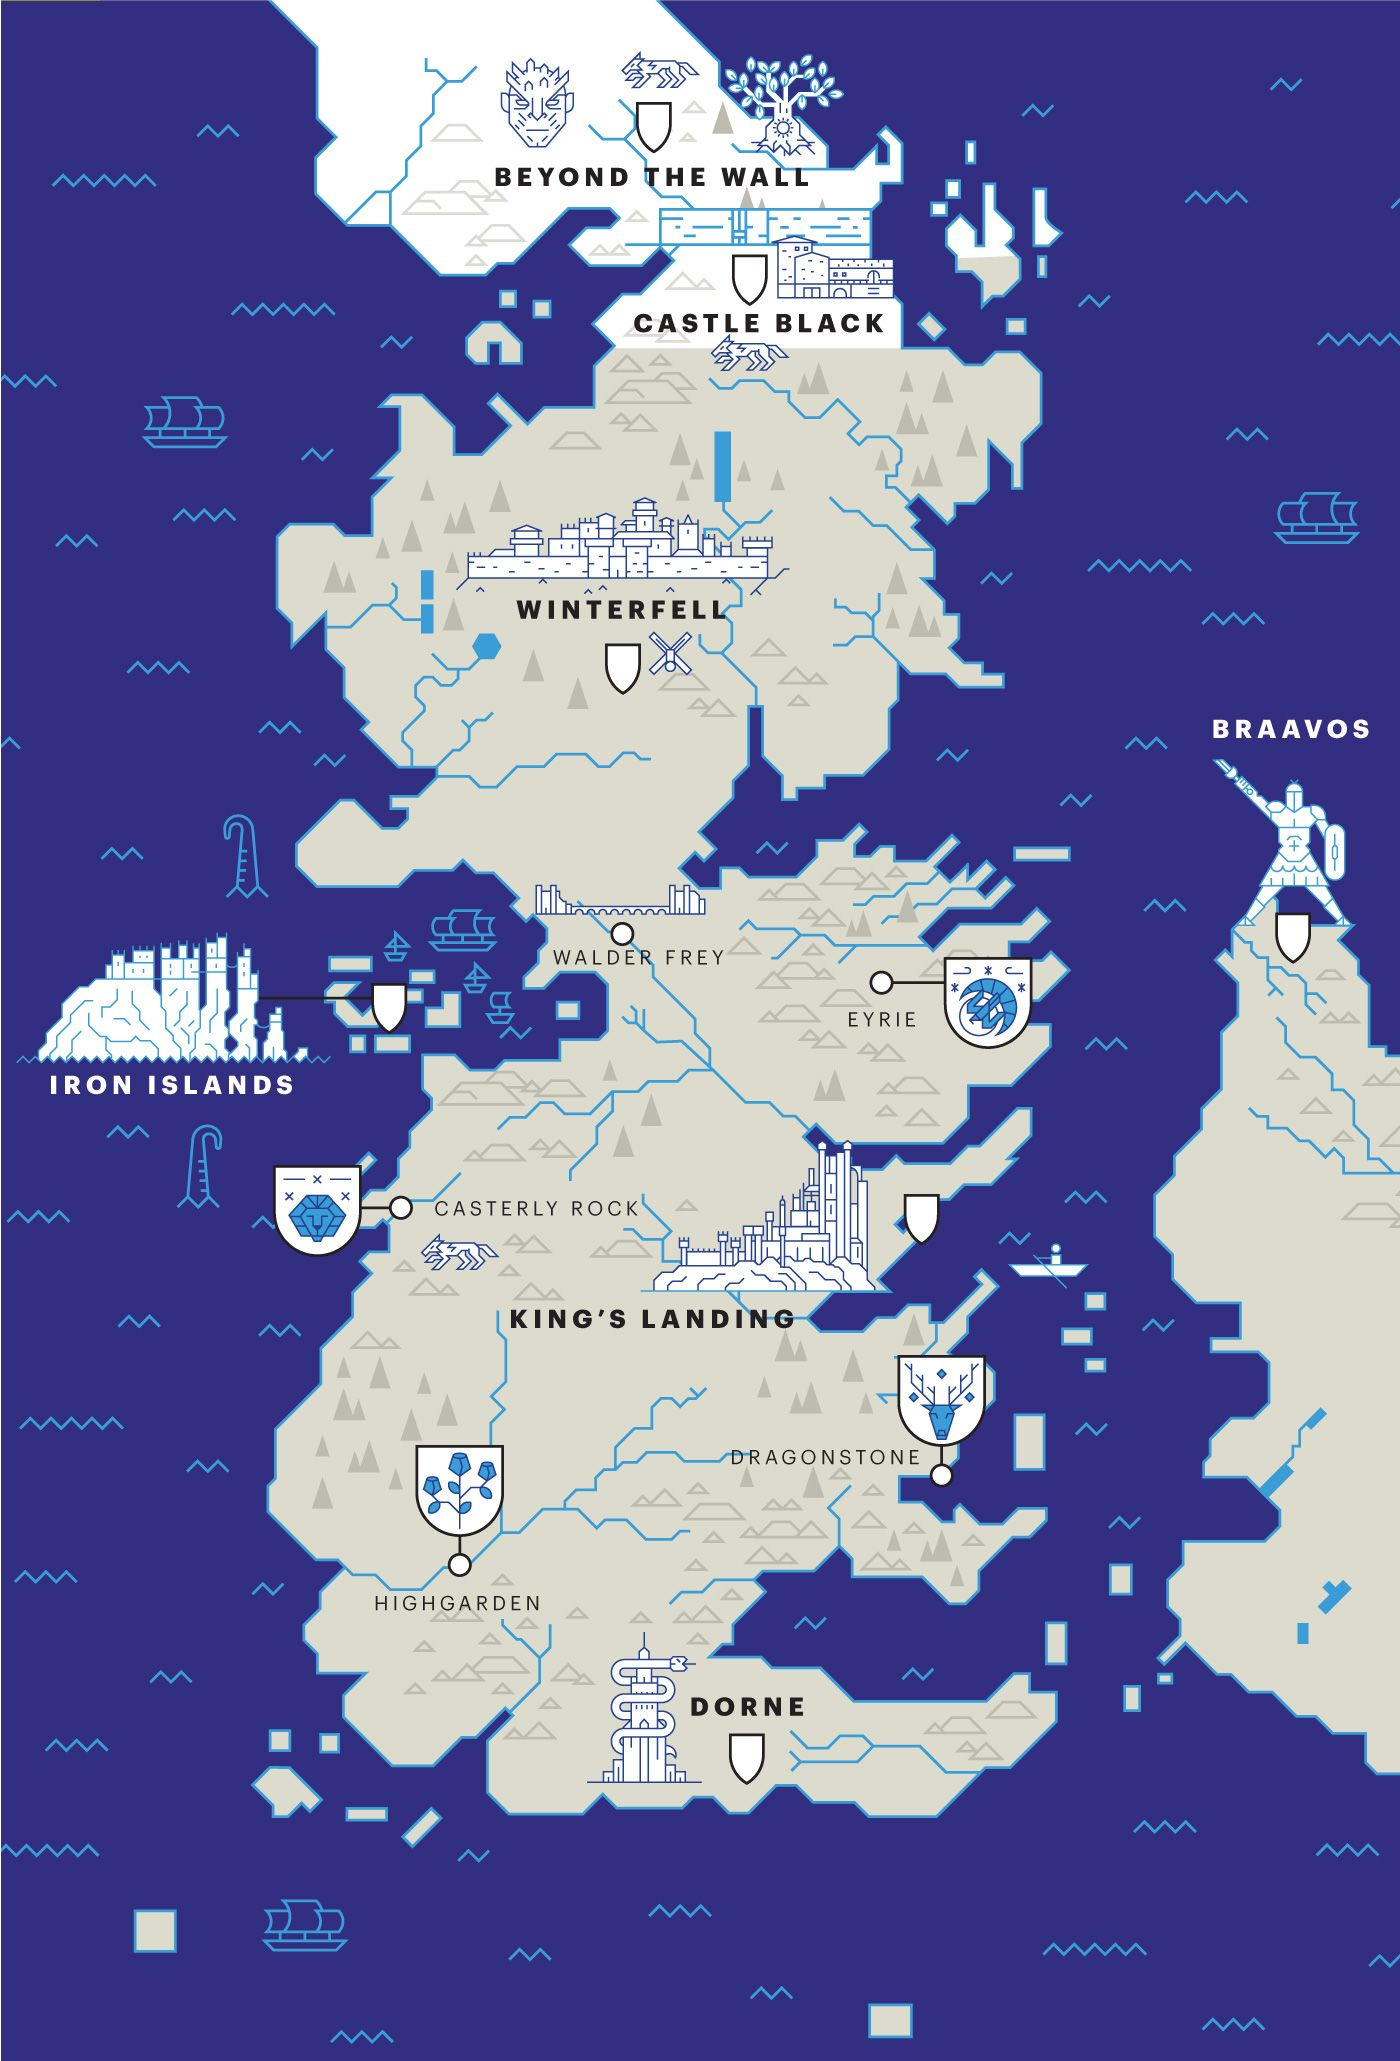 A brand new map of game of thrones for entertainment weekly the a brand new map of game of thrones for entertainment weekly the american magazine about tv series gumiabroncs Gallery